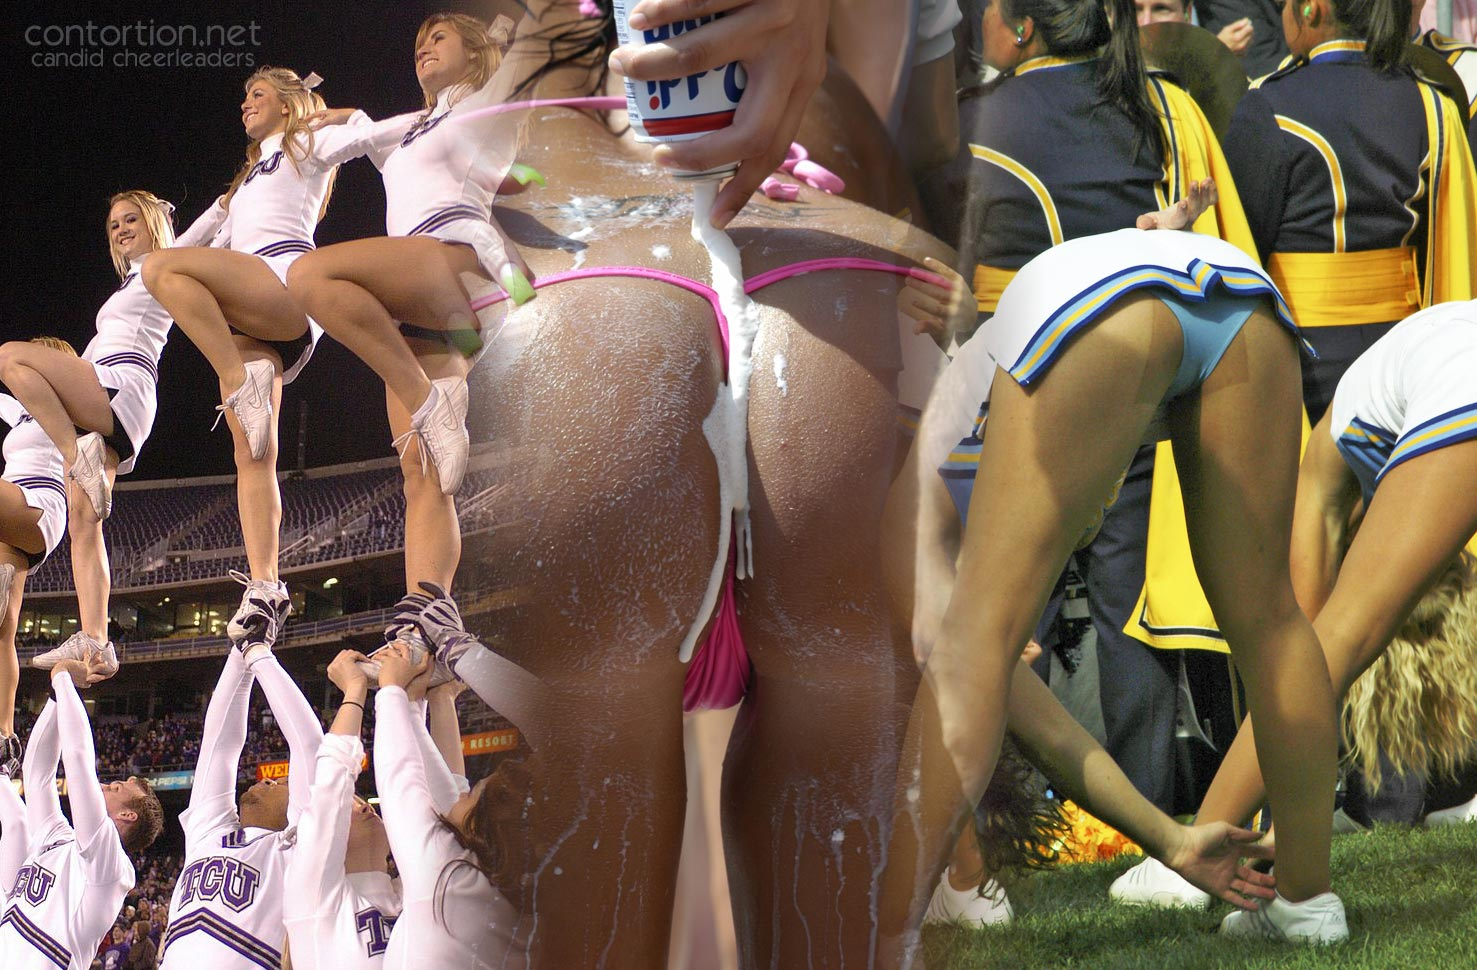 icesexgirl and upskirt and party stars